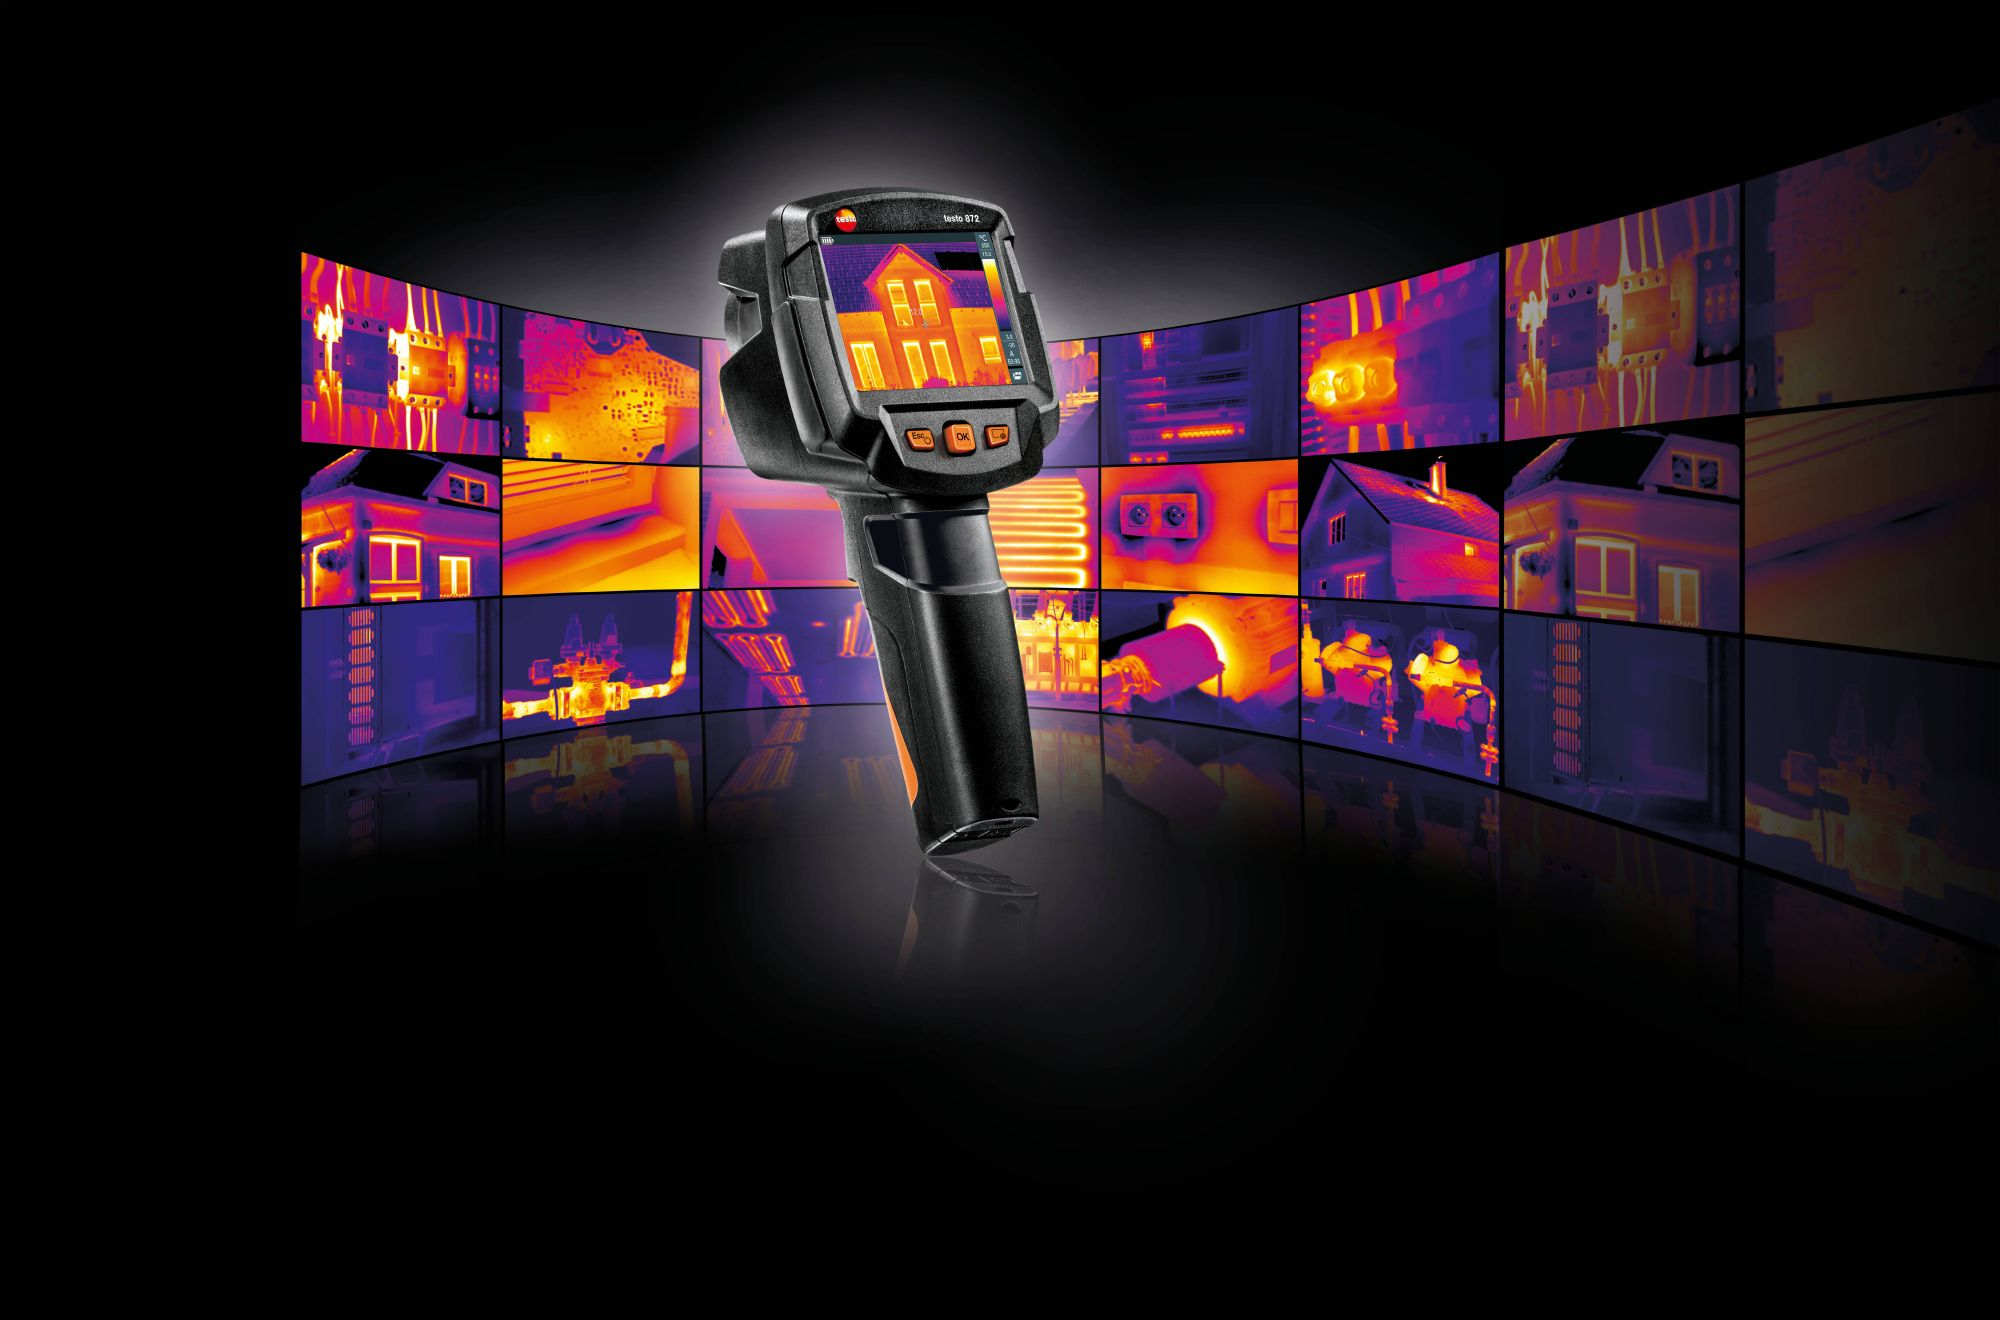 The new thermal imagers